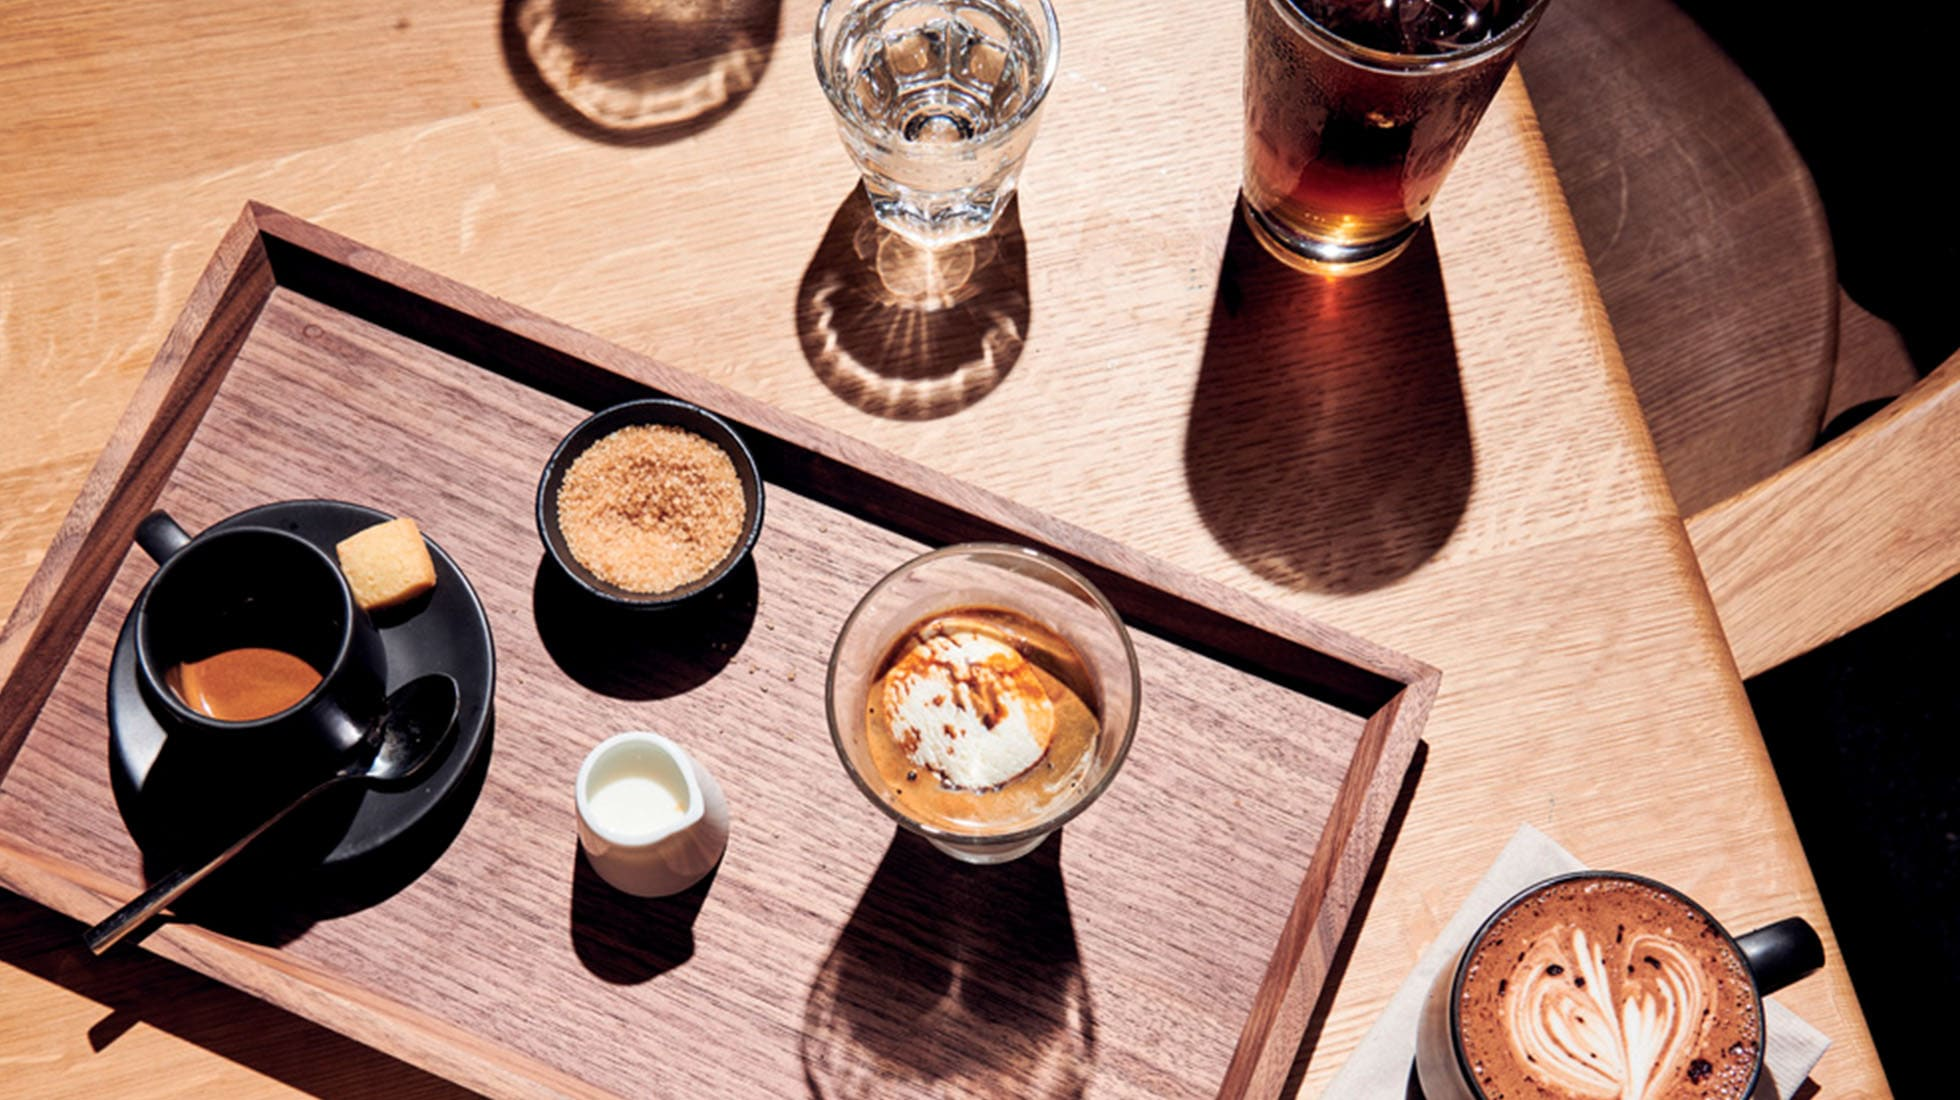 Assorted coffee beverages on a wooden tray and wood table, shot from above